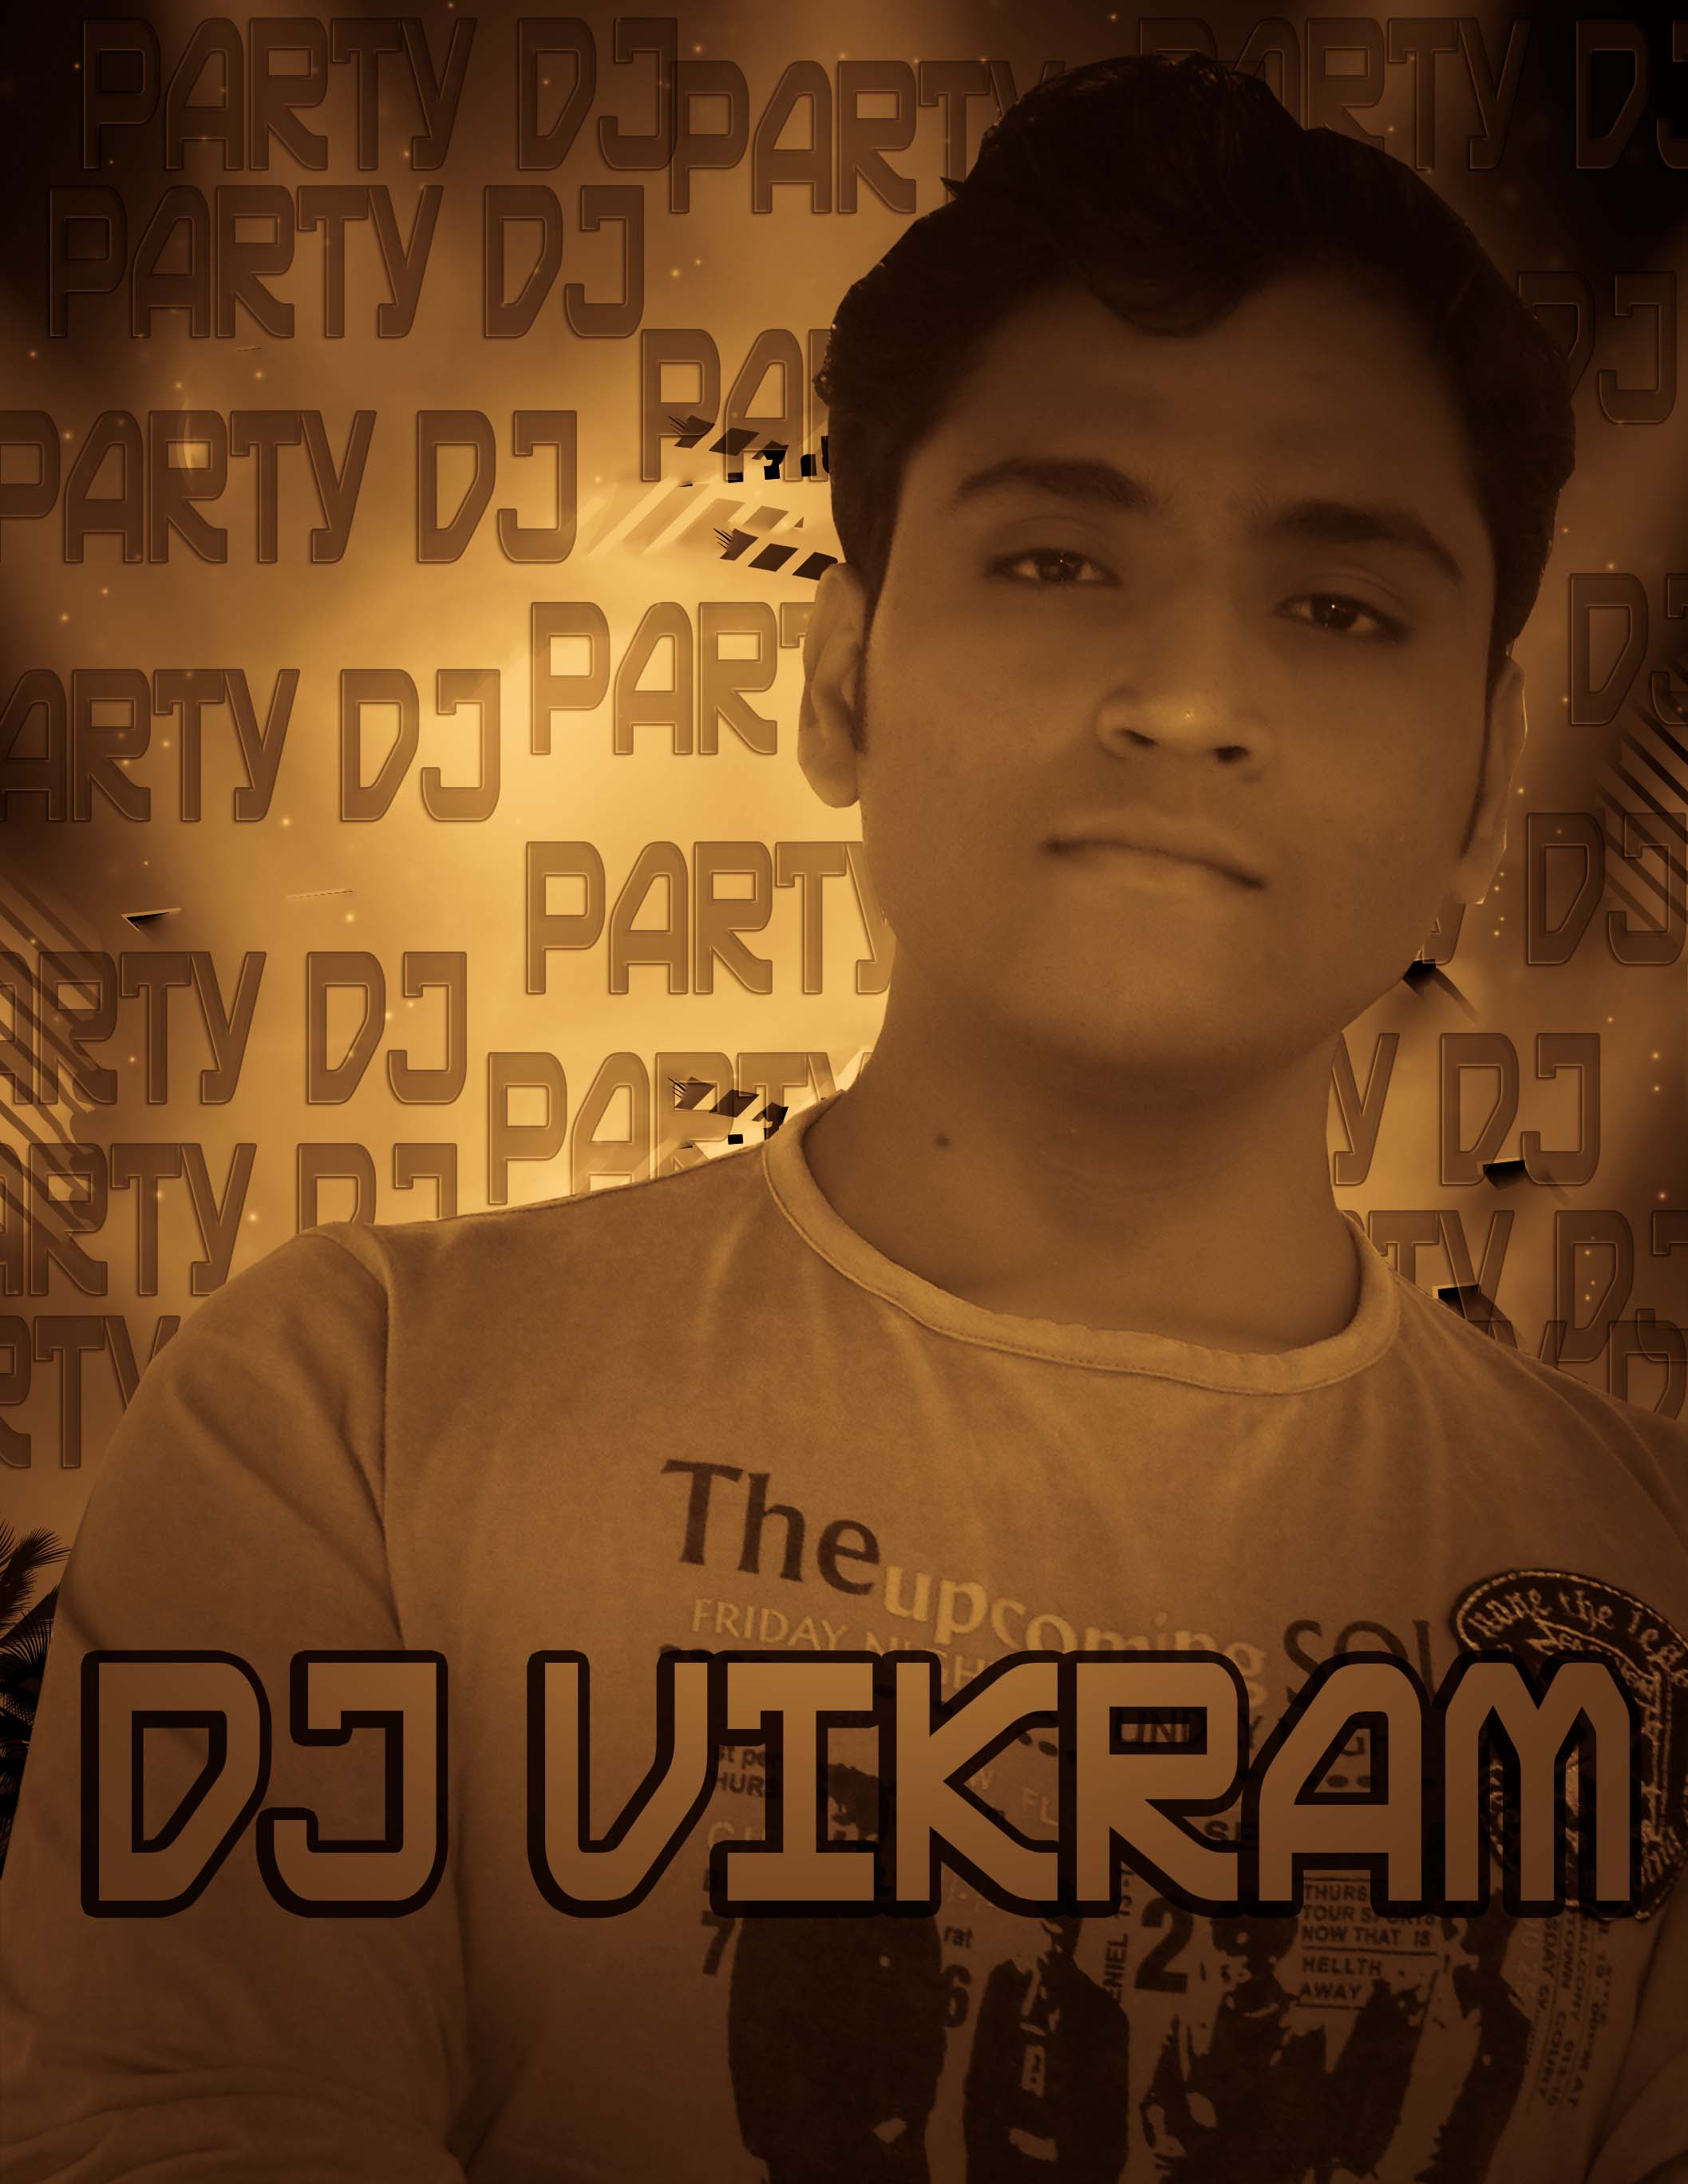 Happy Birthday New Theme Remix DJVikram